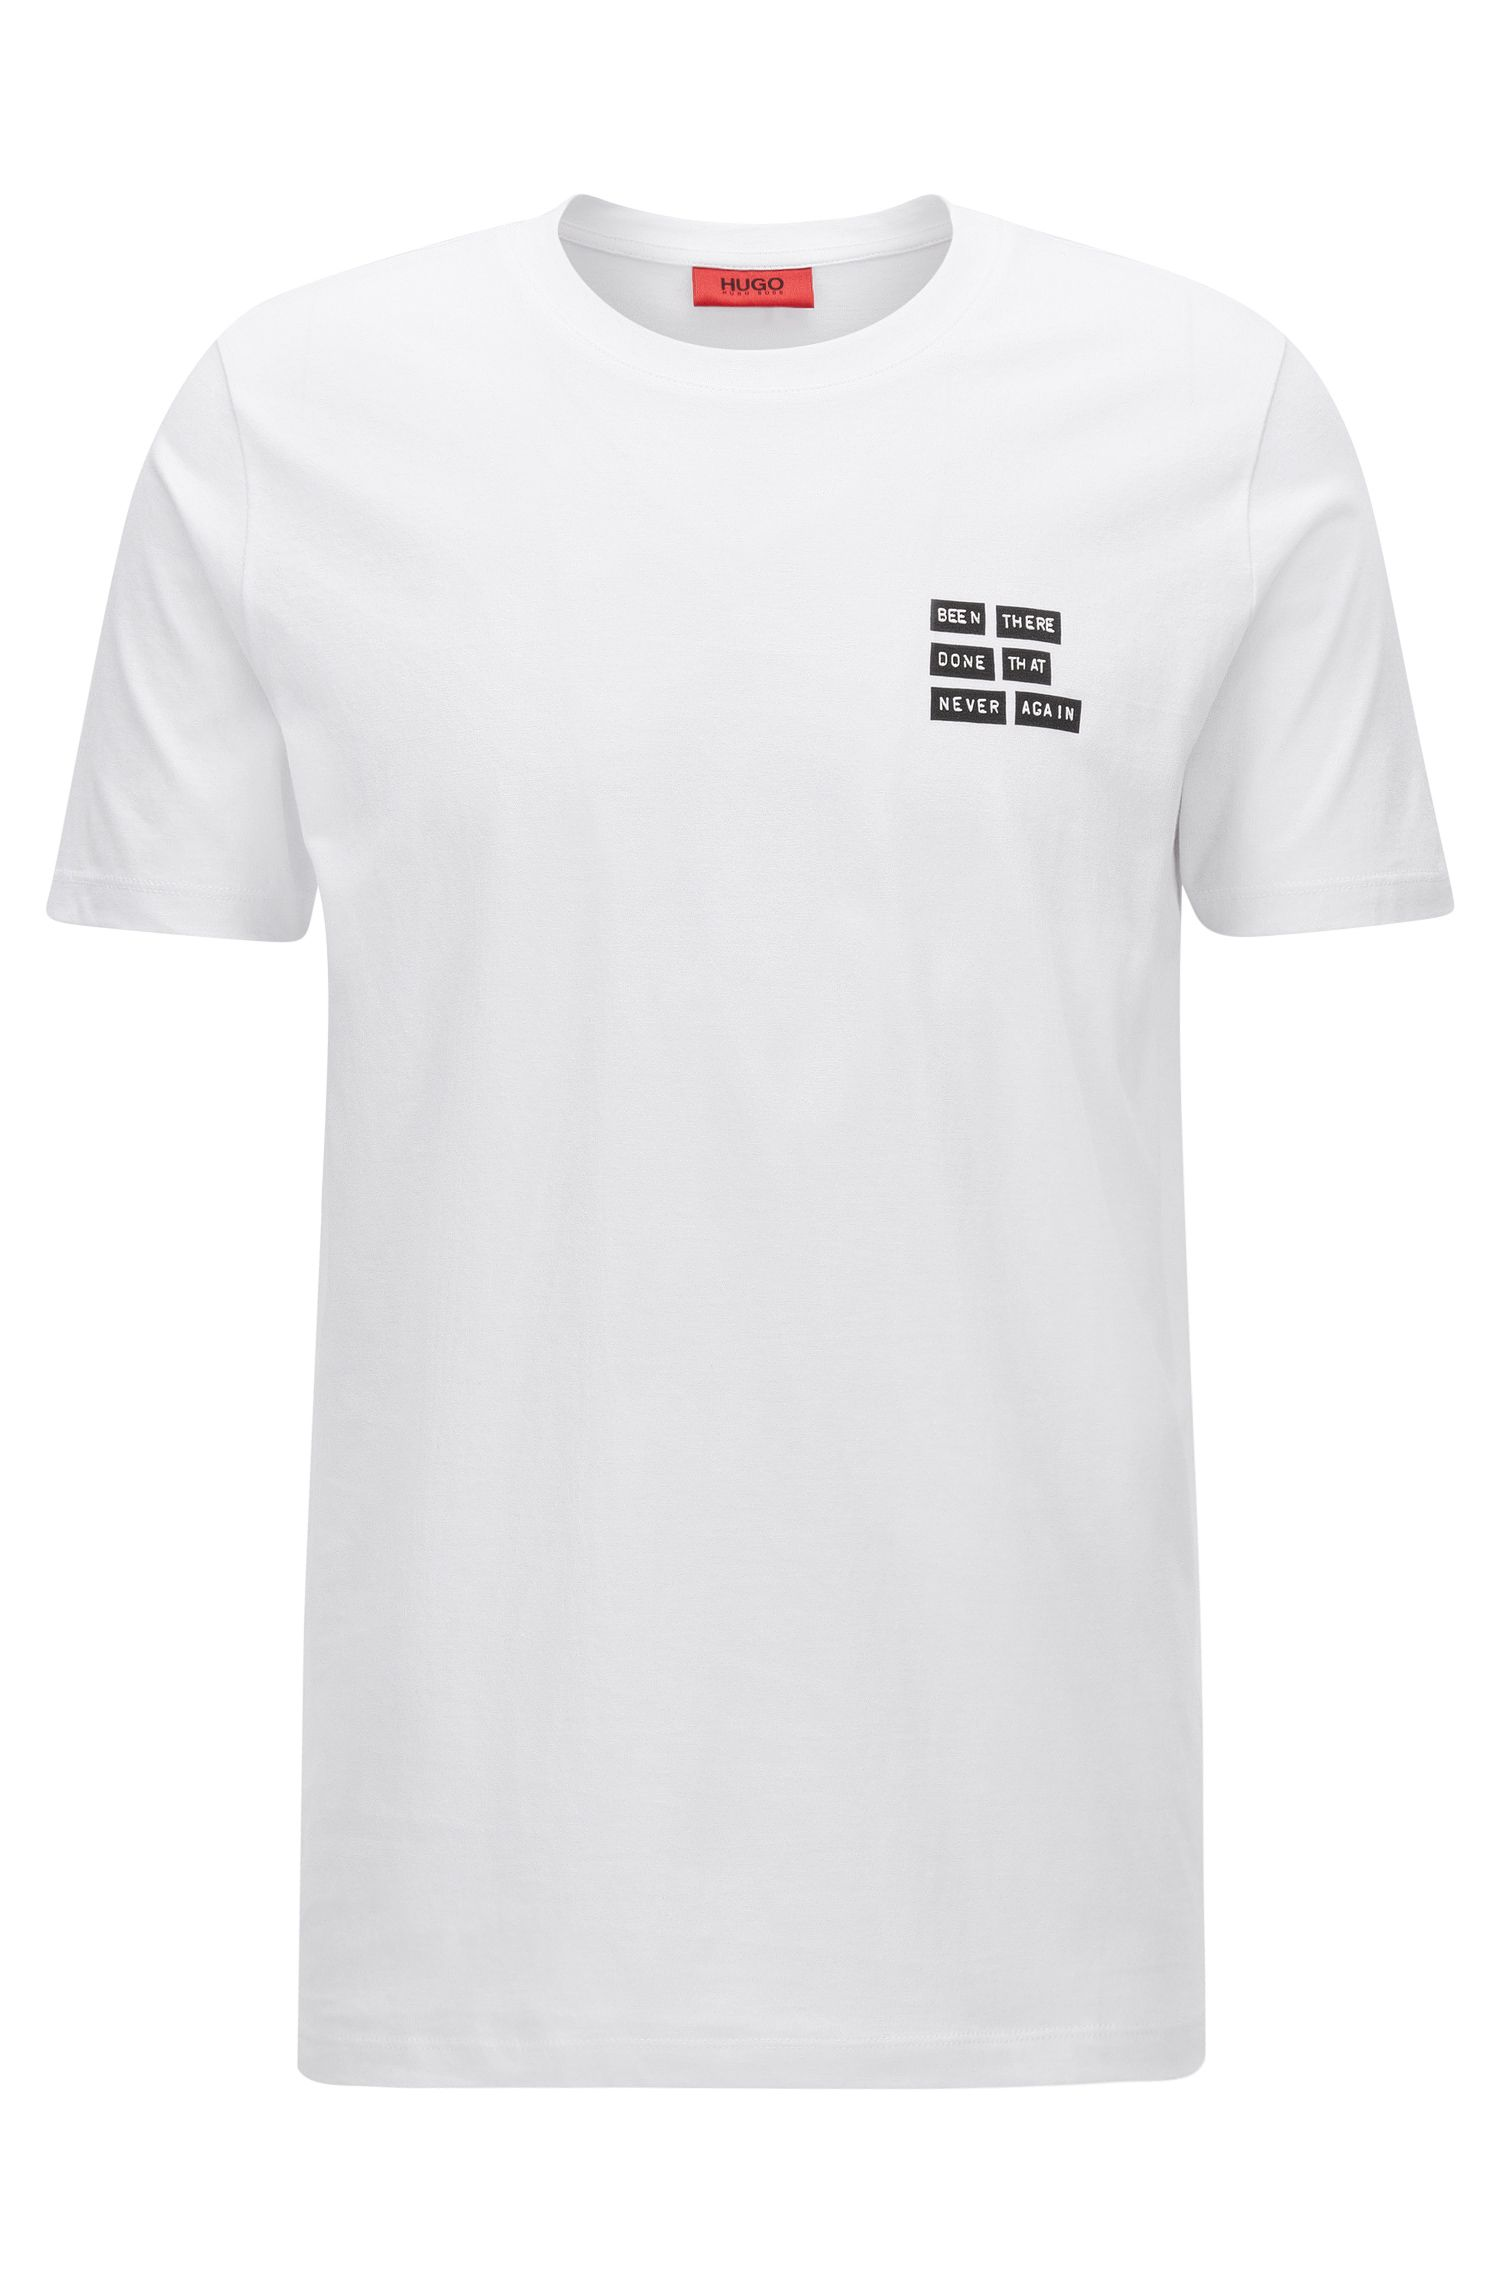 Cotton Graphic T-Shirt | Dords